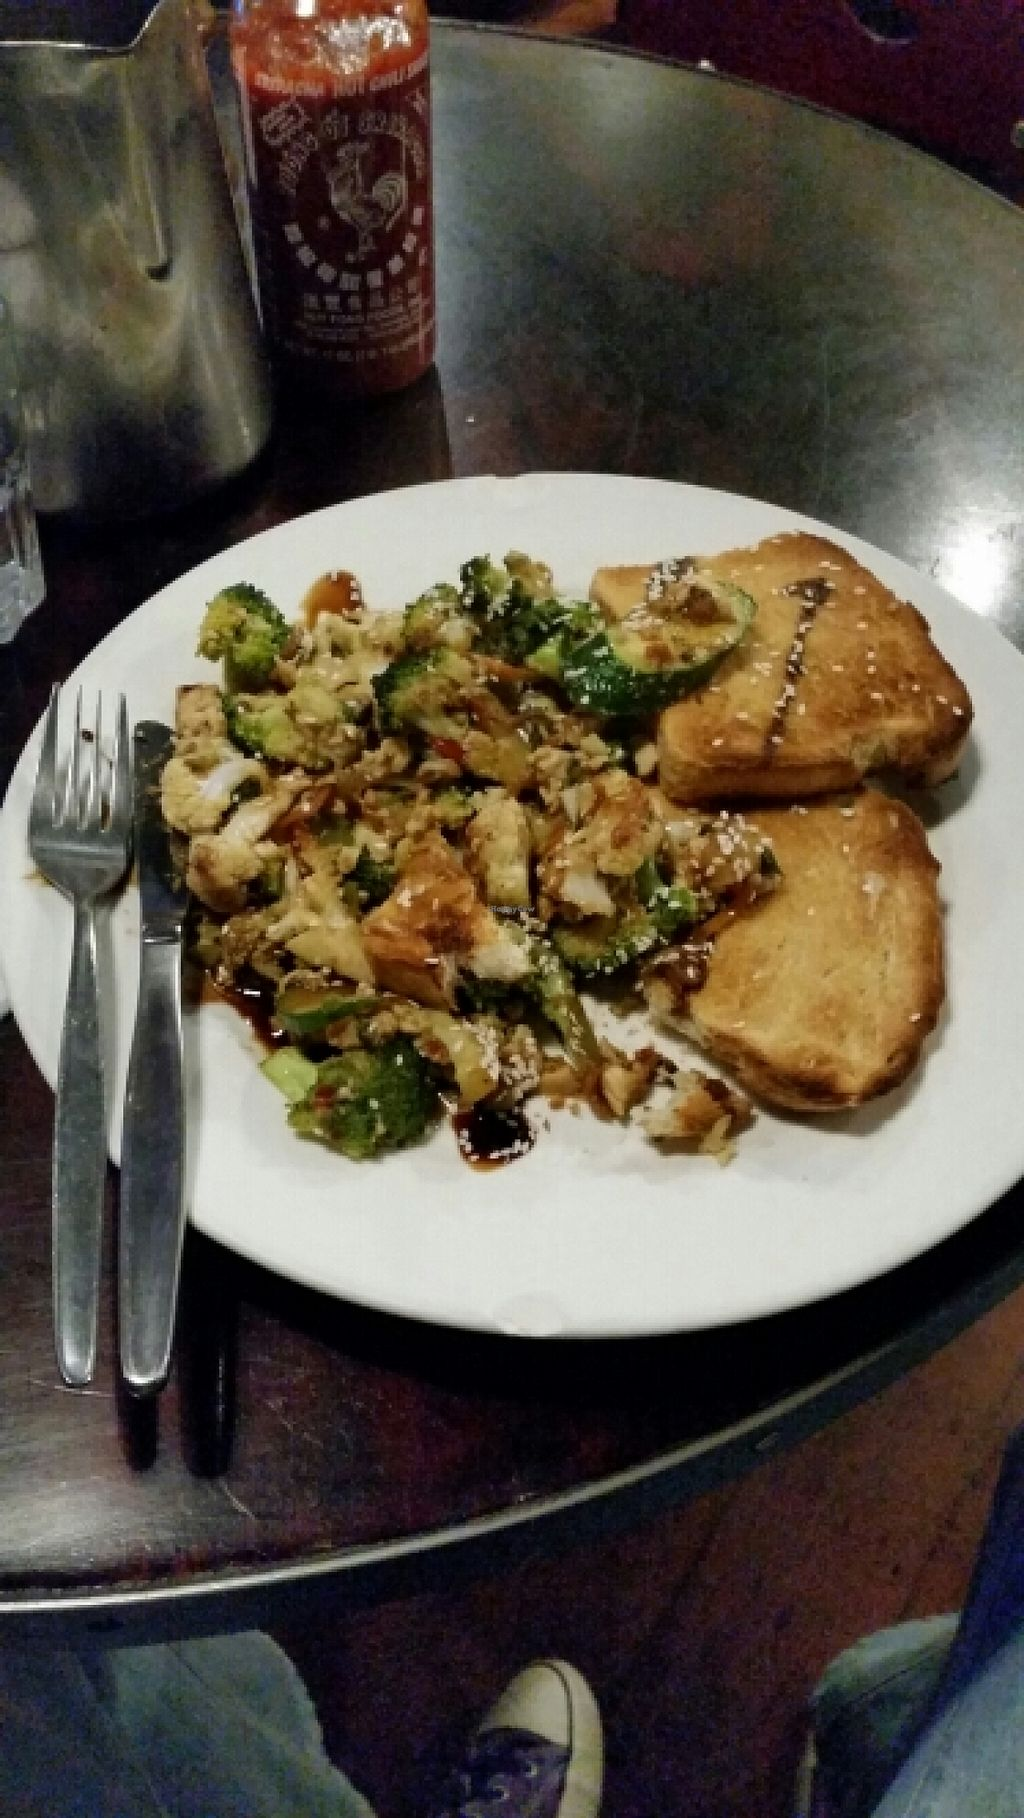 "Photo of Midnight Espresso Bar  by <a href=""/members/profile/AndyTheVWDude"">AndyTheVWDude</a> <br/>Scrambled tofu with vege & chilli sauce ~ Tasty! <br/> May 7, 2016  - <a href='/contact/abuse/image/5126/147889'>Report</a>"